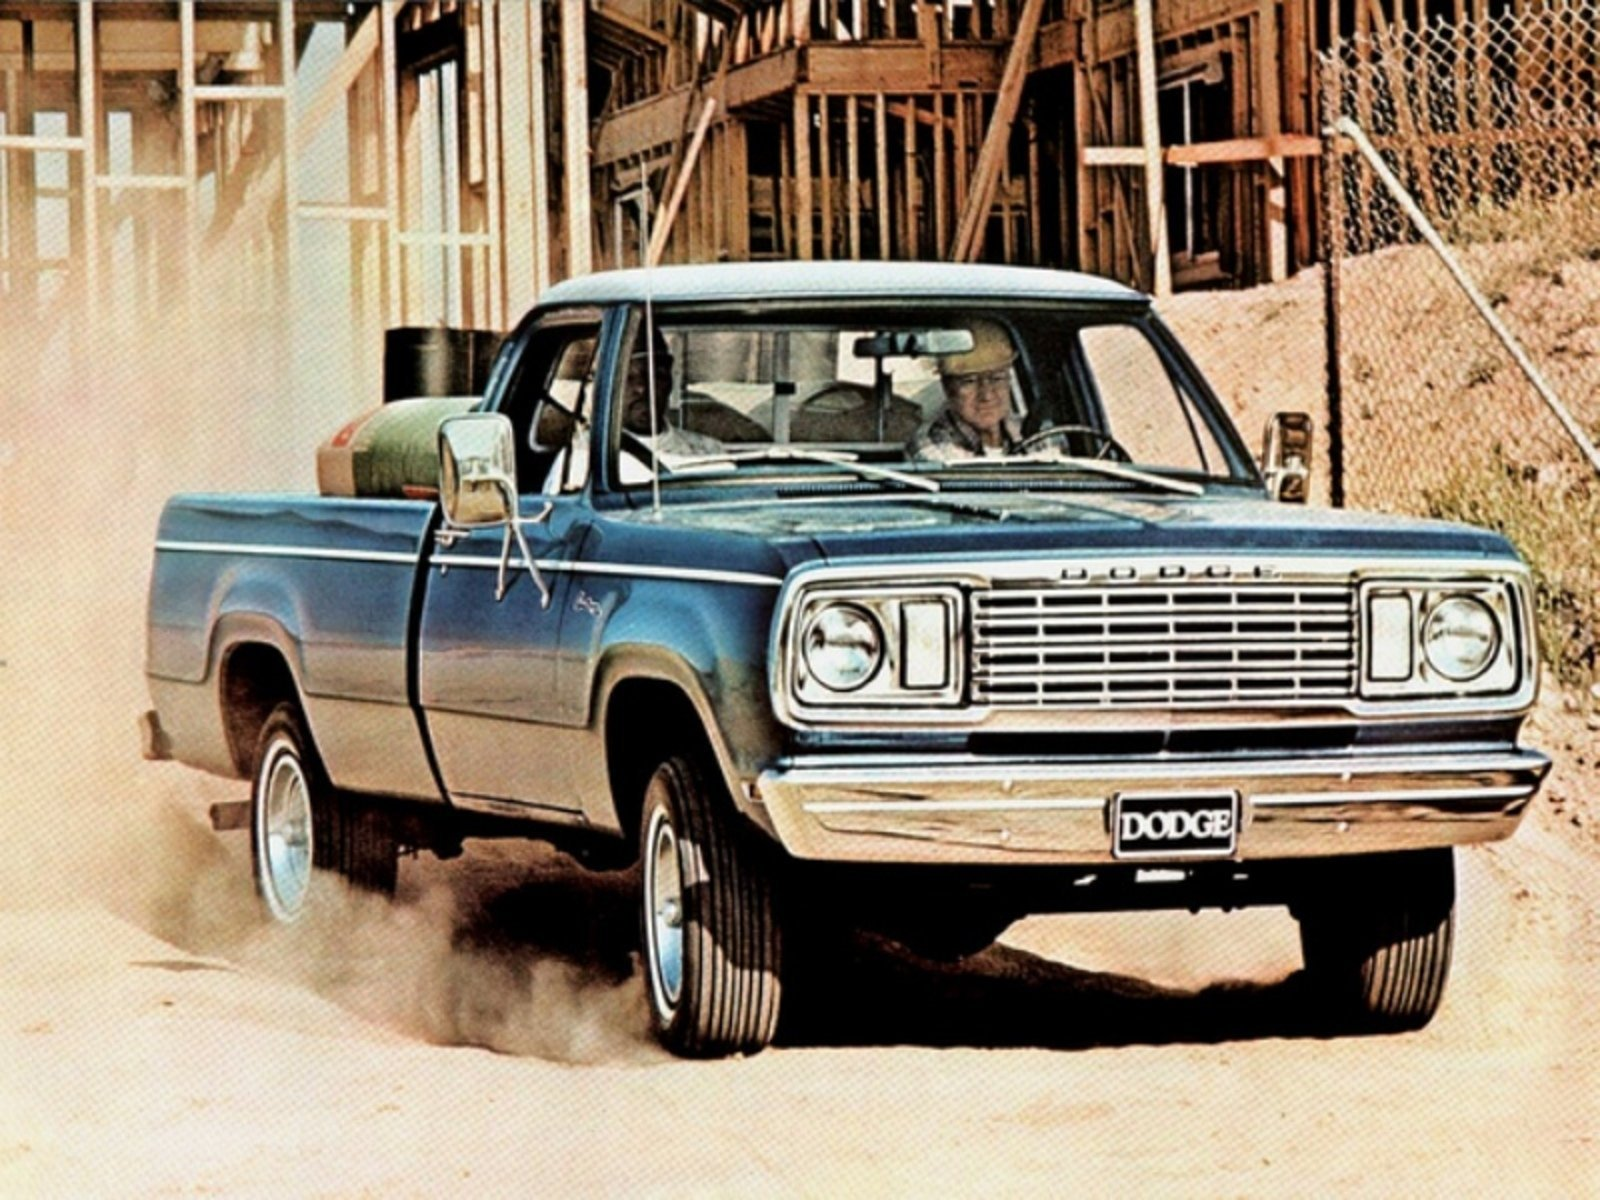 Ram Power Wagon For Sale >> 1980 - 2003 Dodge Ram D-Series Review - Top Speed